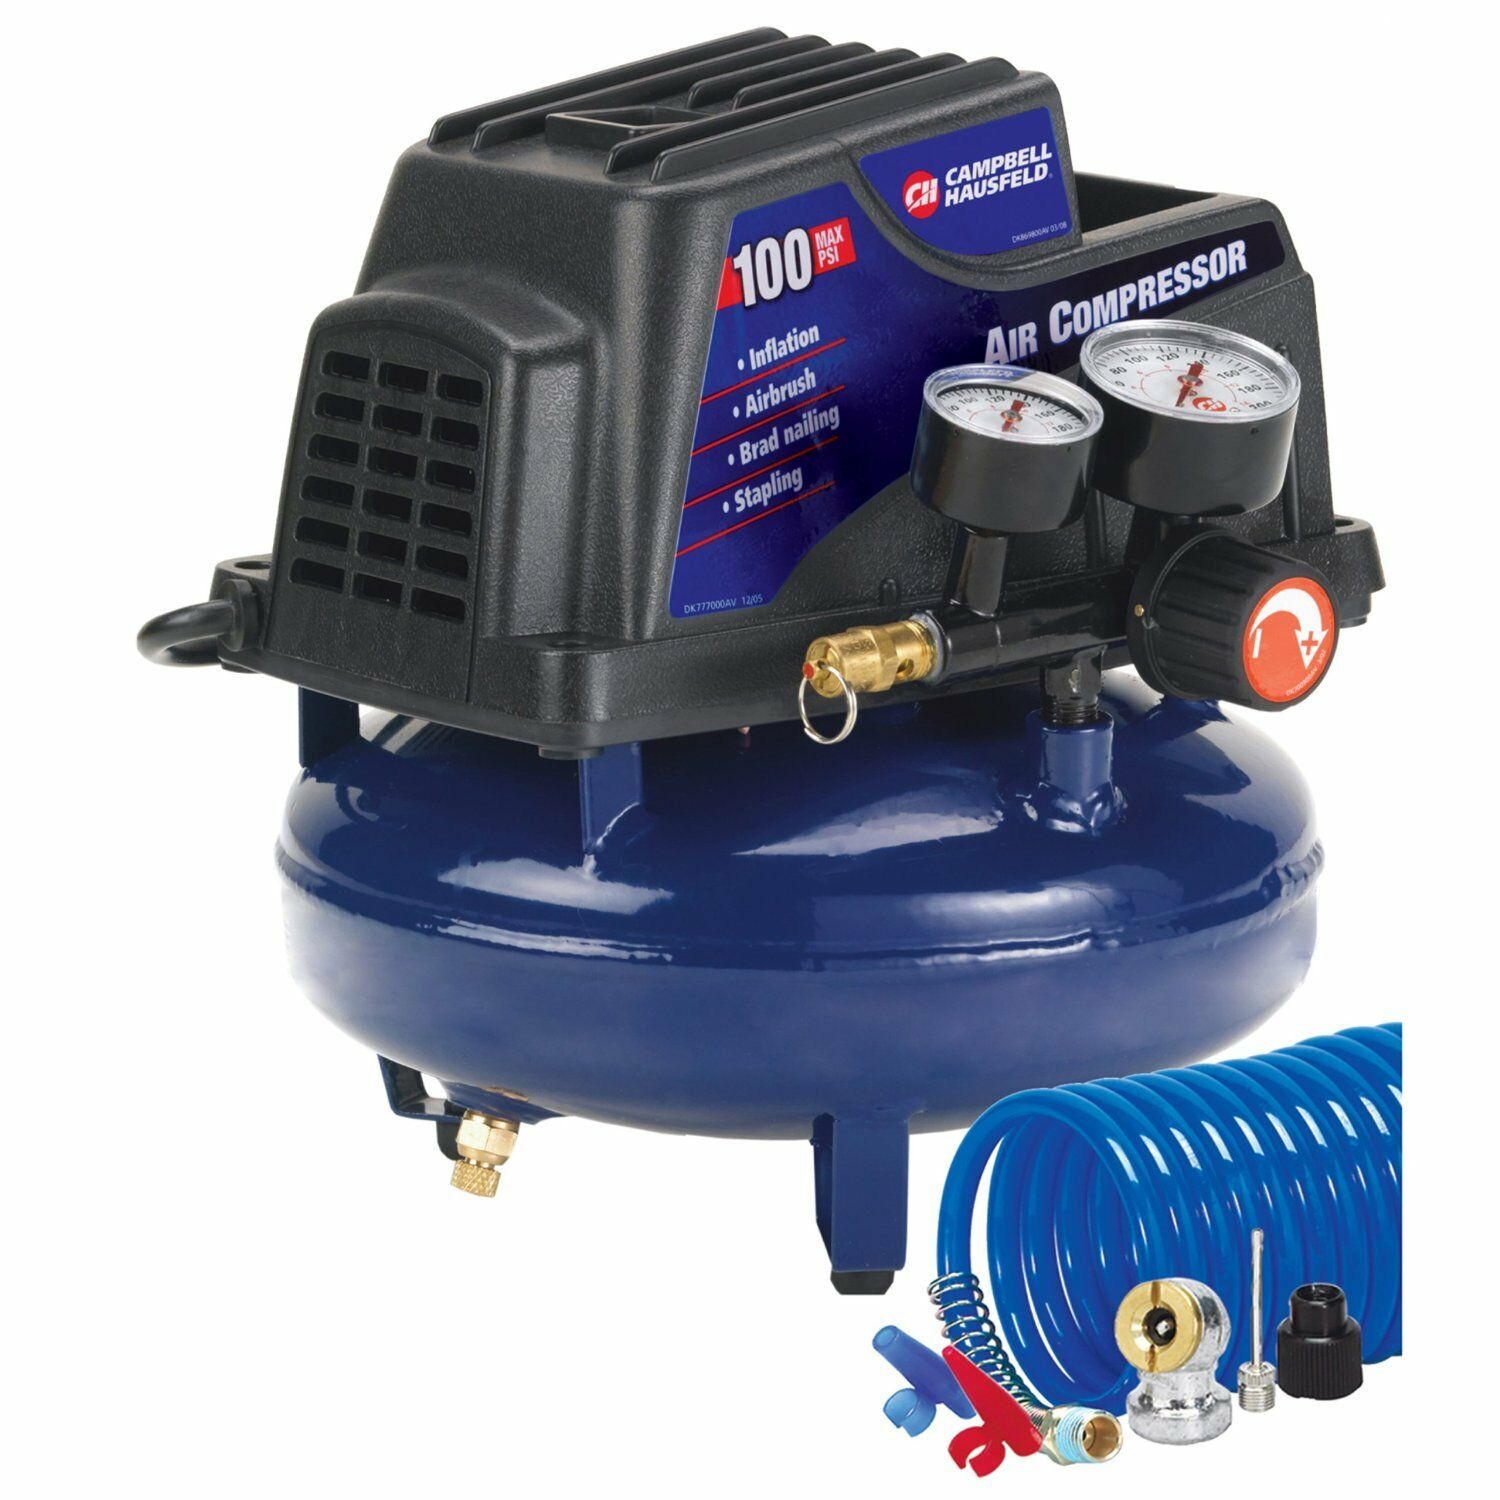 Campbell Hausfeld Air Compressor with Accessory Kit Nailing Tires Inflater